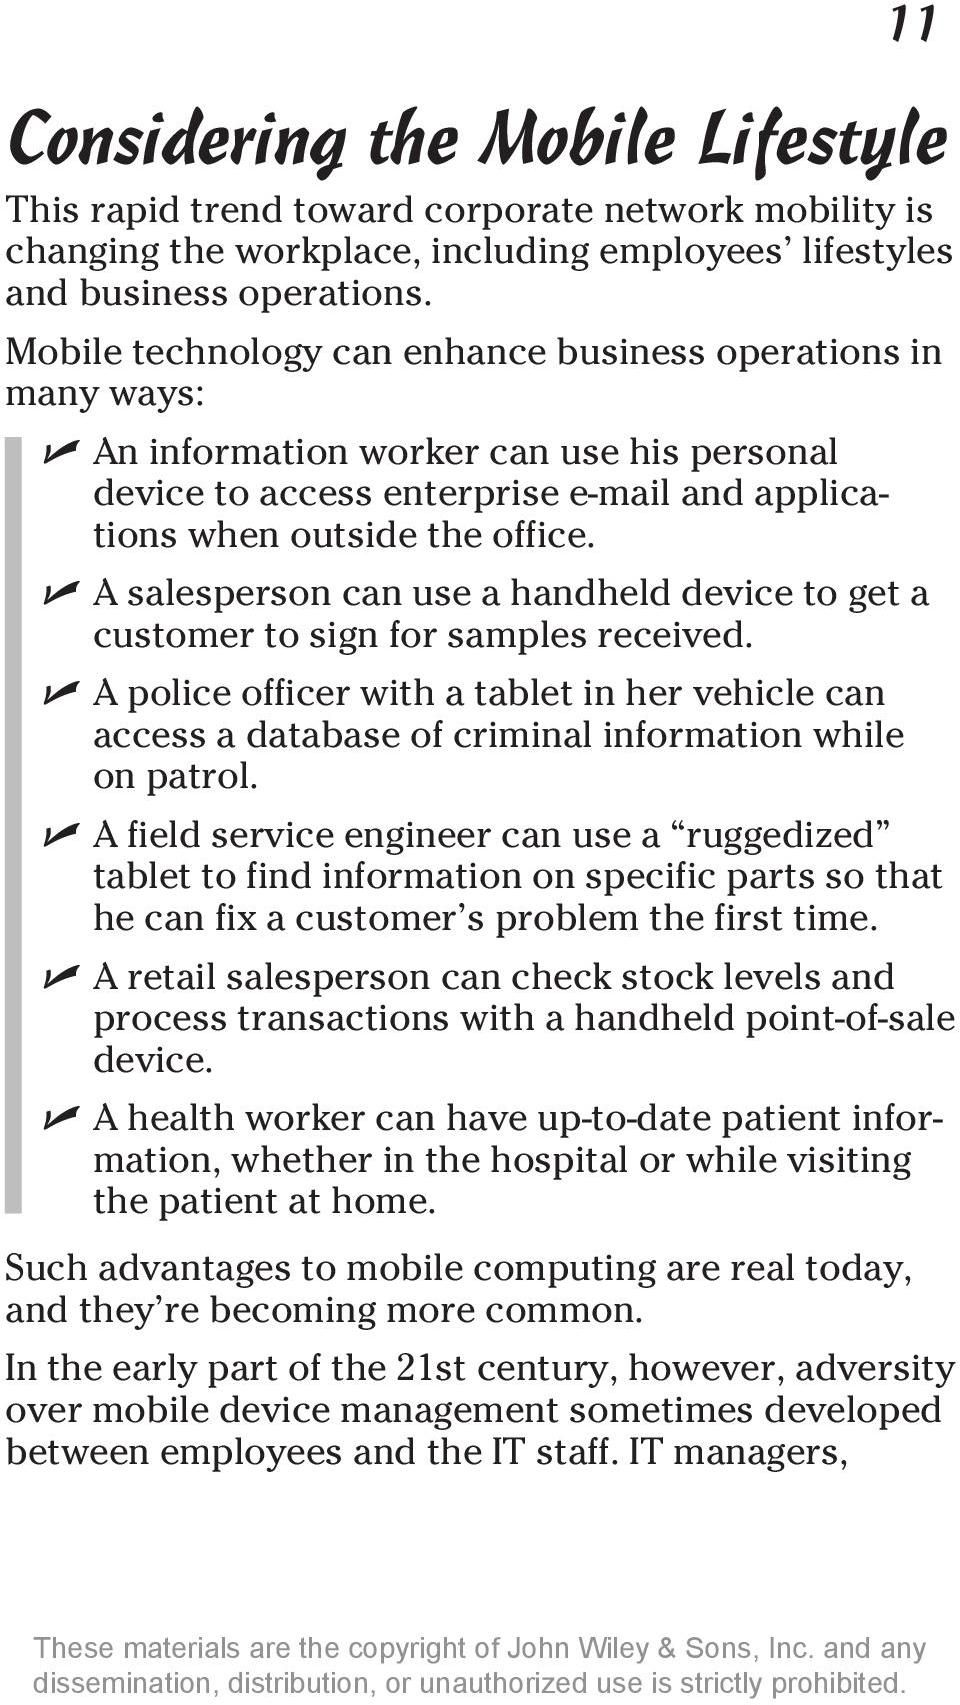 A salesperson can use a handheld device to get a customer to sign for samples received. A police officer with a tablet in her vehicle can access a database of criminal information while on patrol.